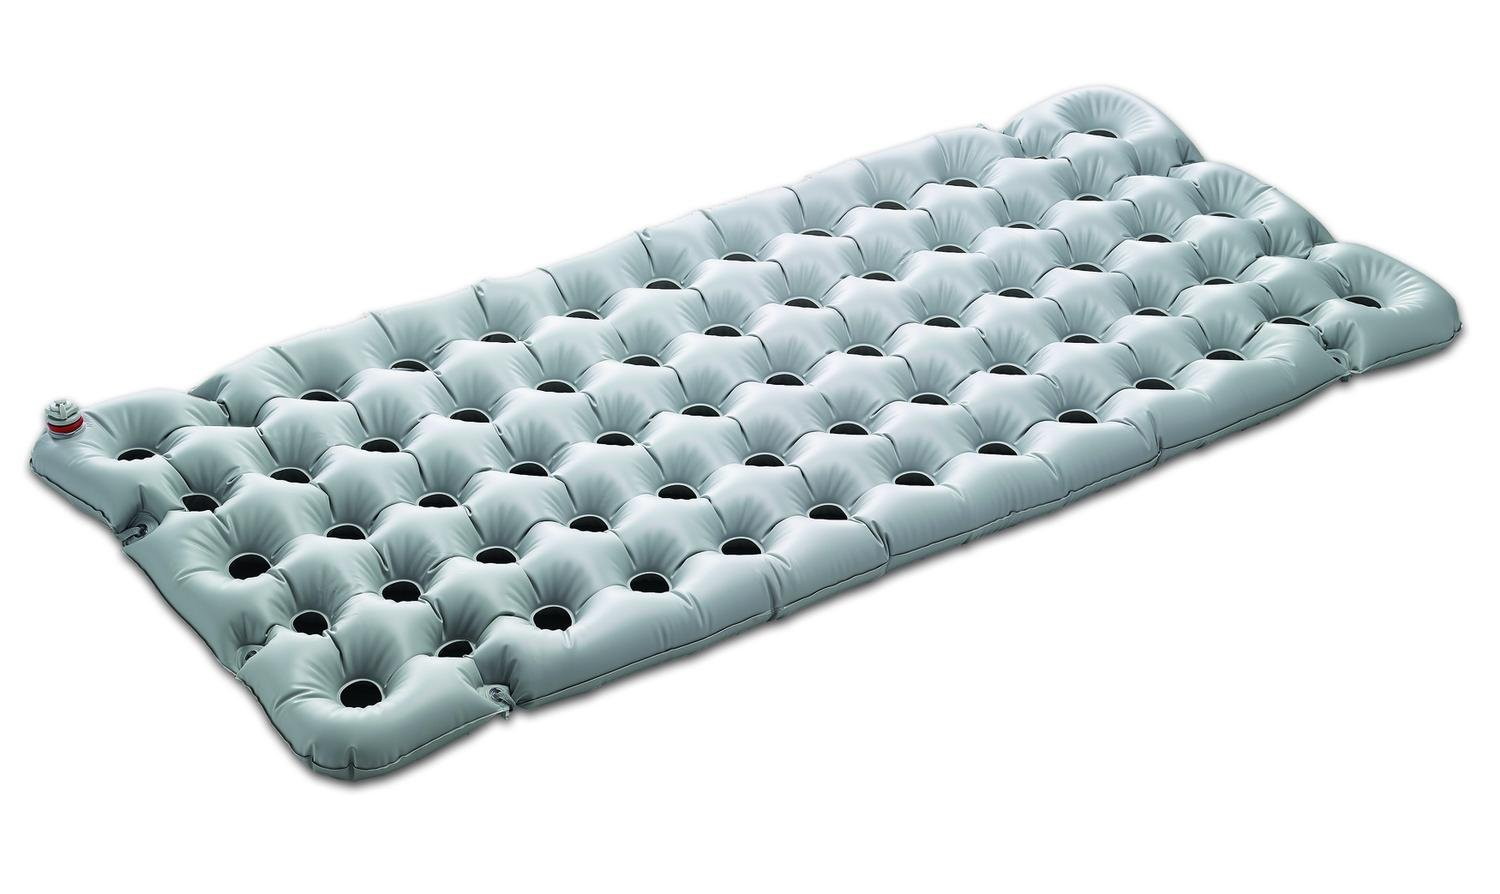 Invacare Air Flotation Mattress Overlay With Manual Pump 76''L x 33''W x 3''H (inflated)